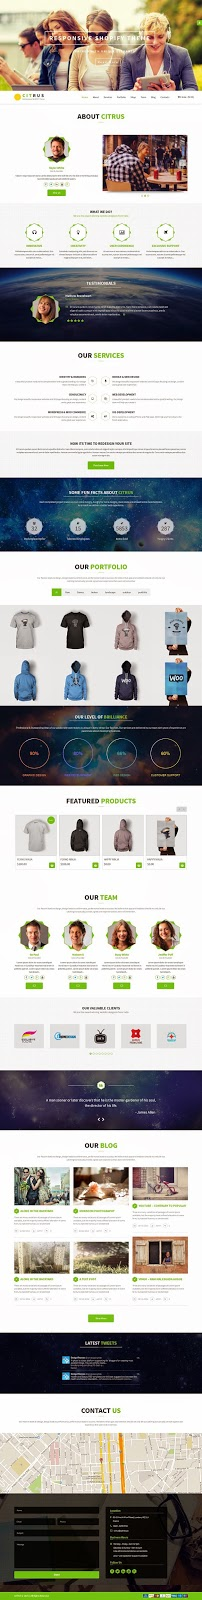 Free Best Shopify Theme 2015